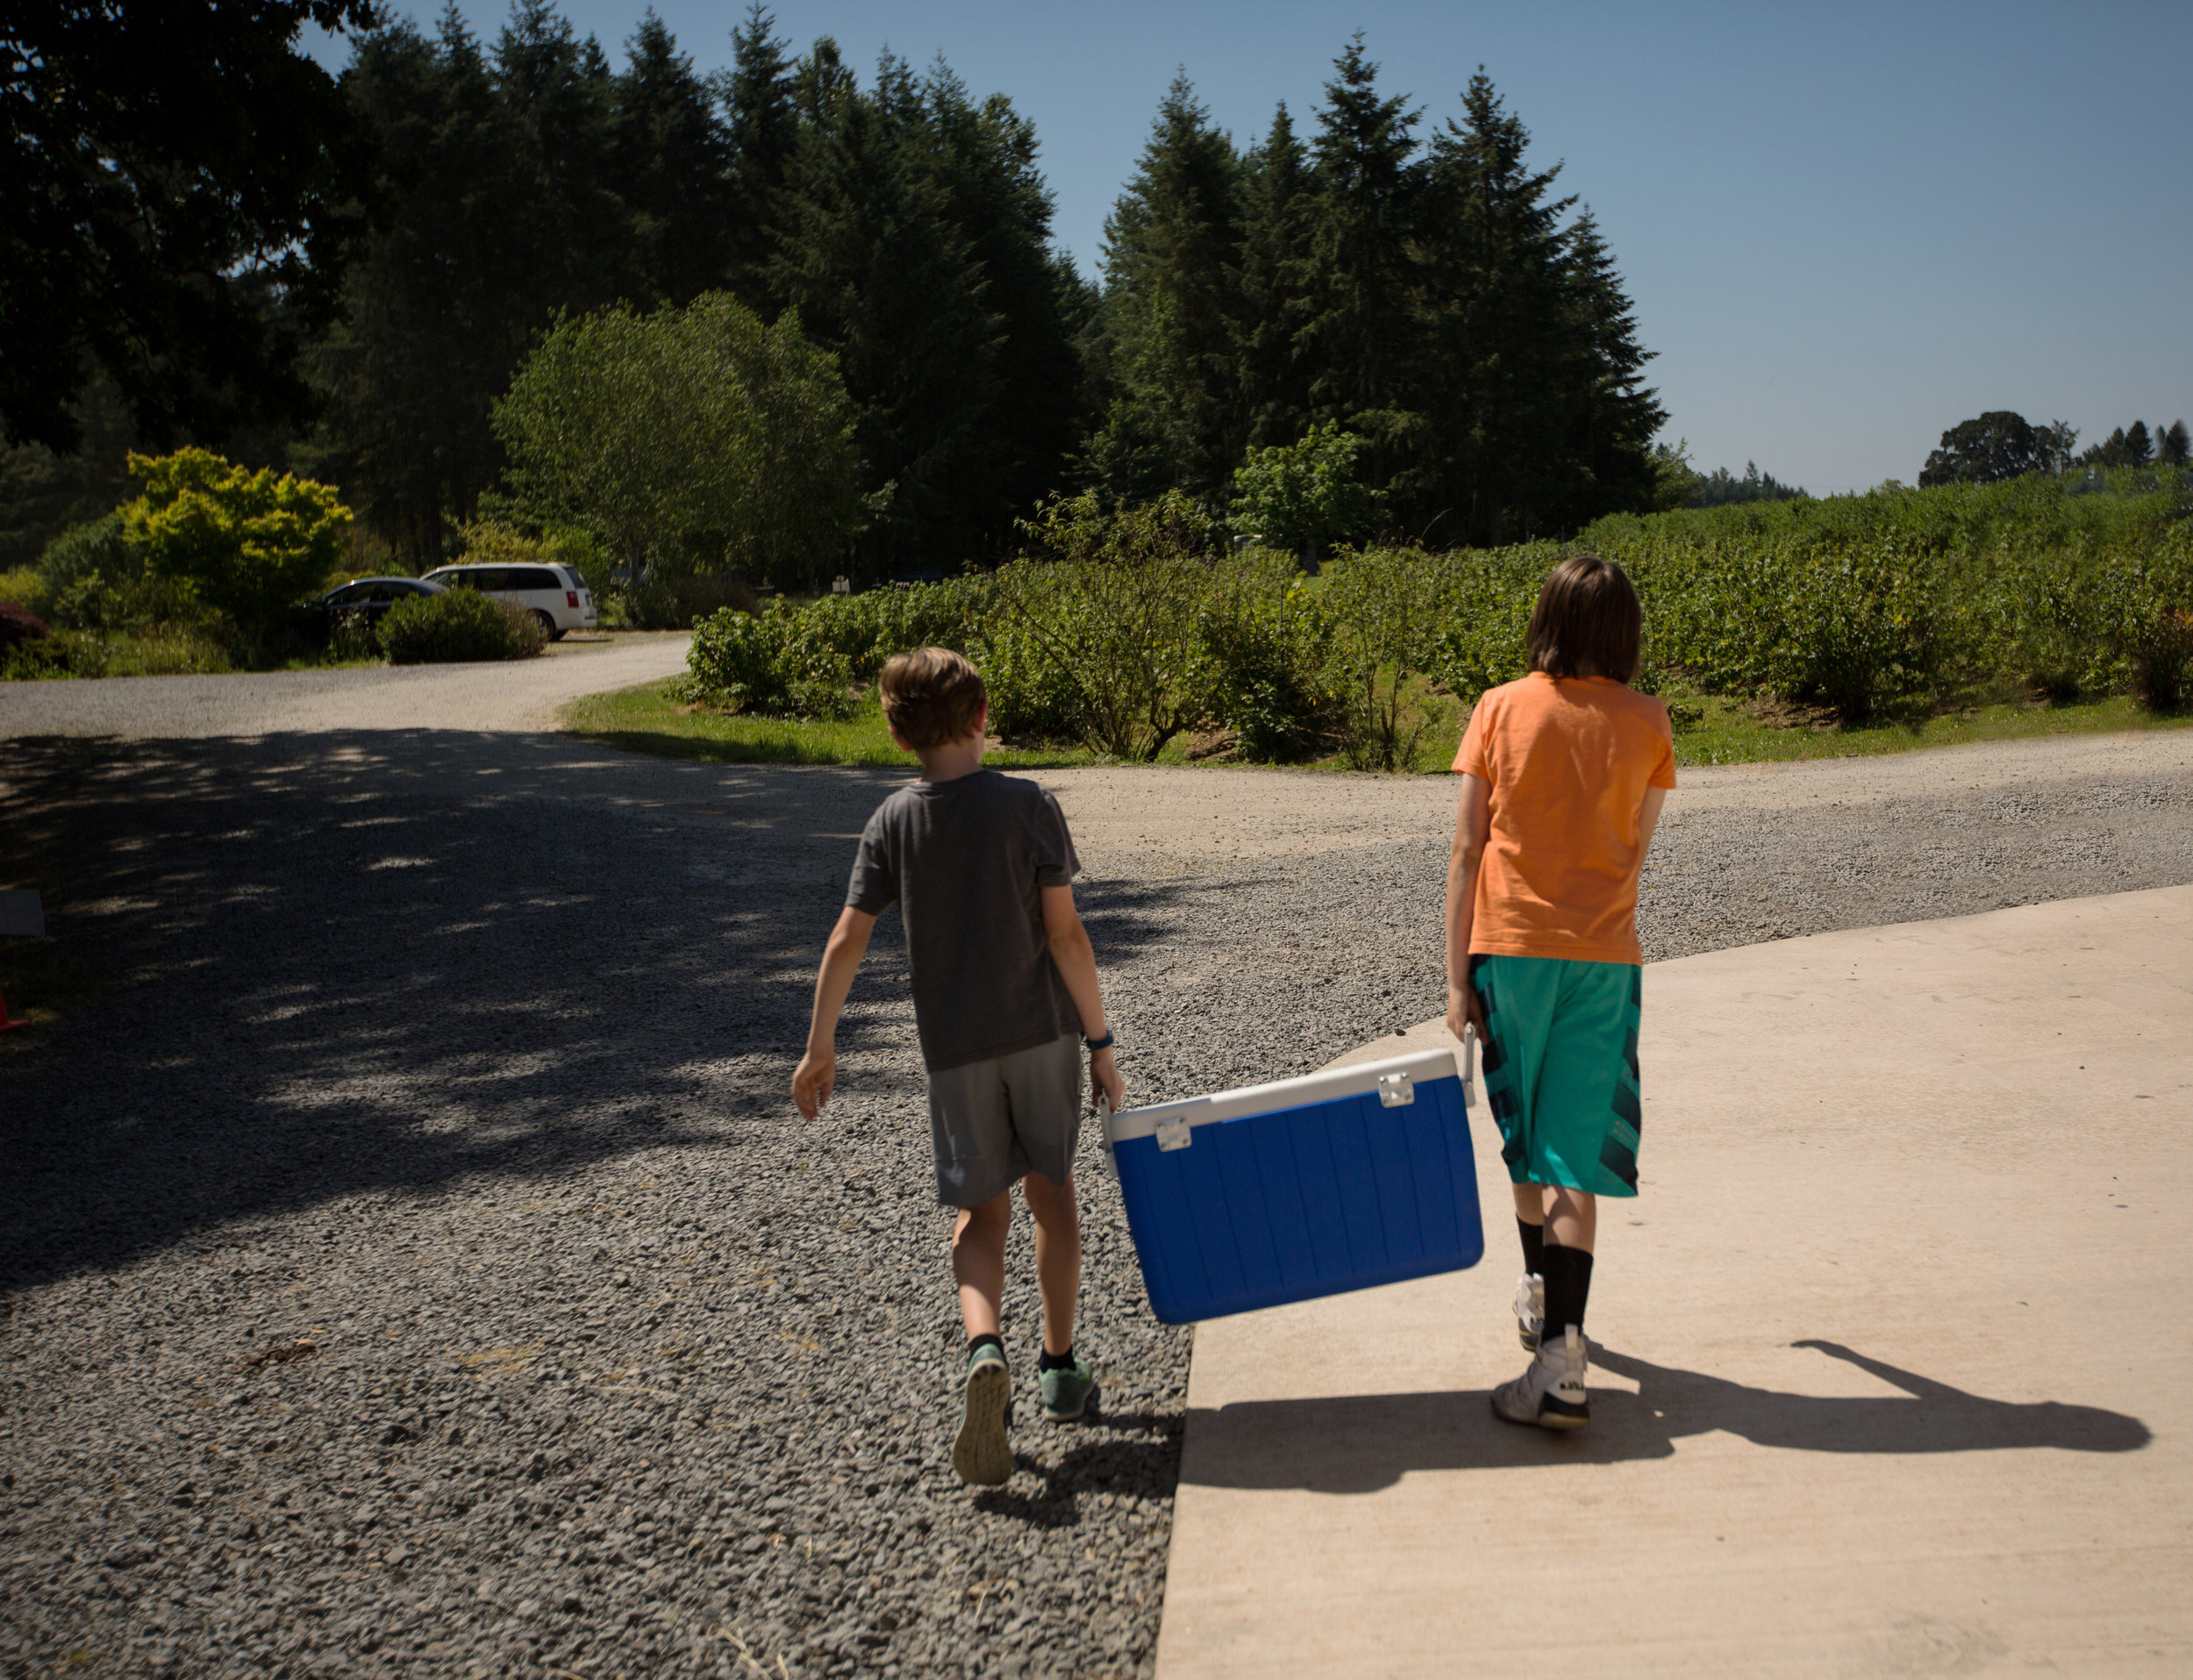 boys carrying cooler full of blueberries to car